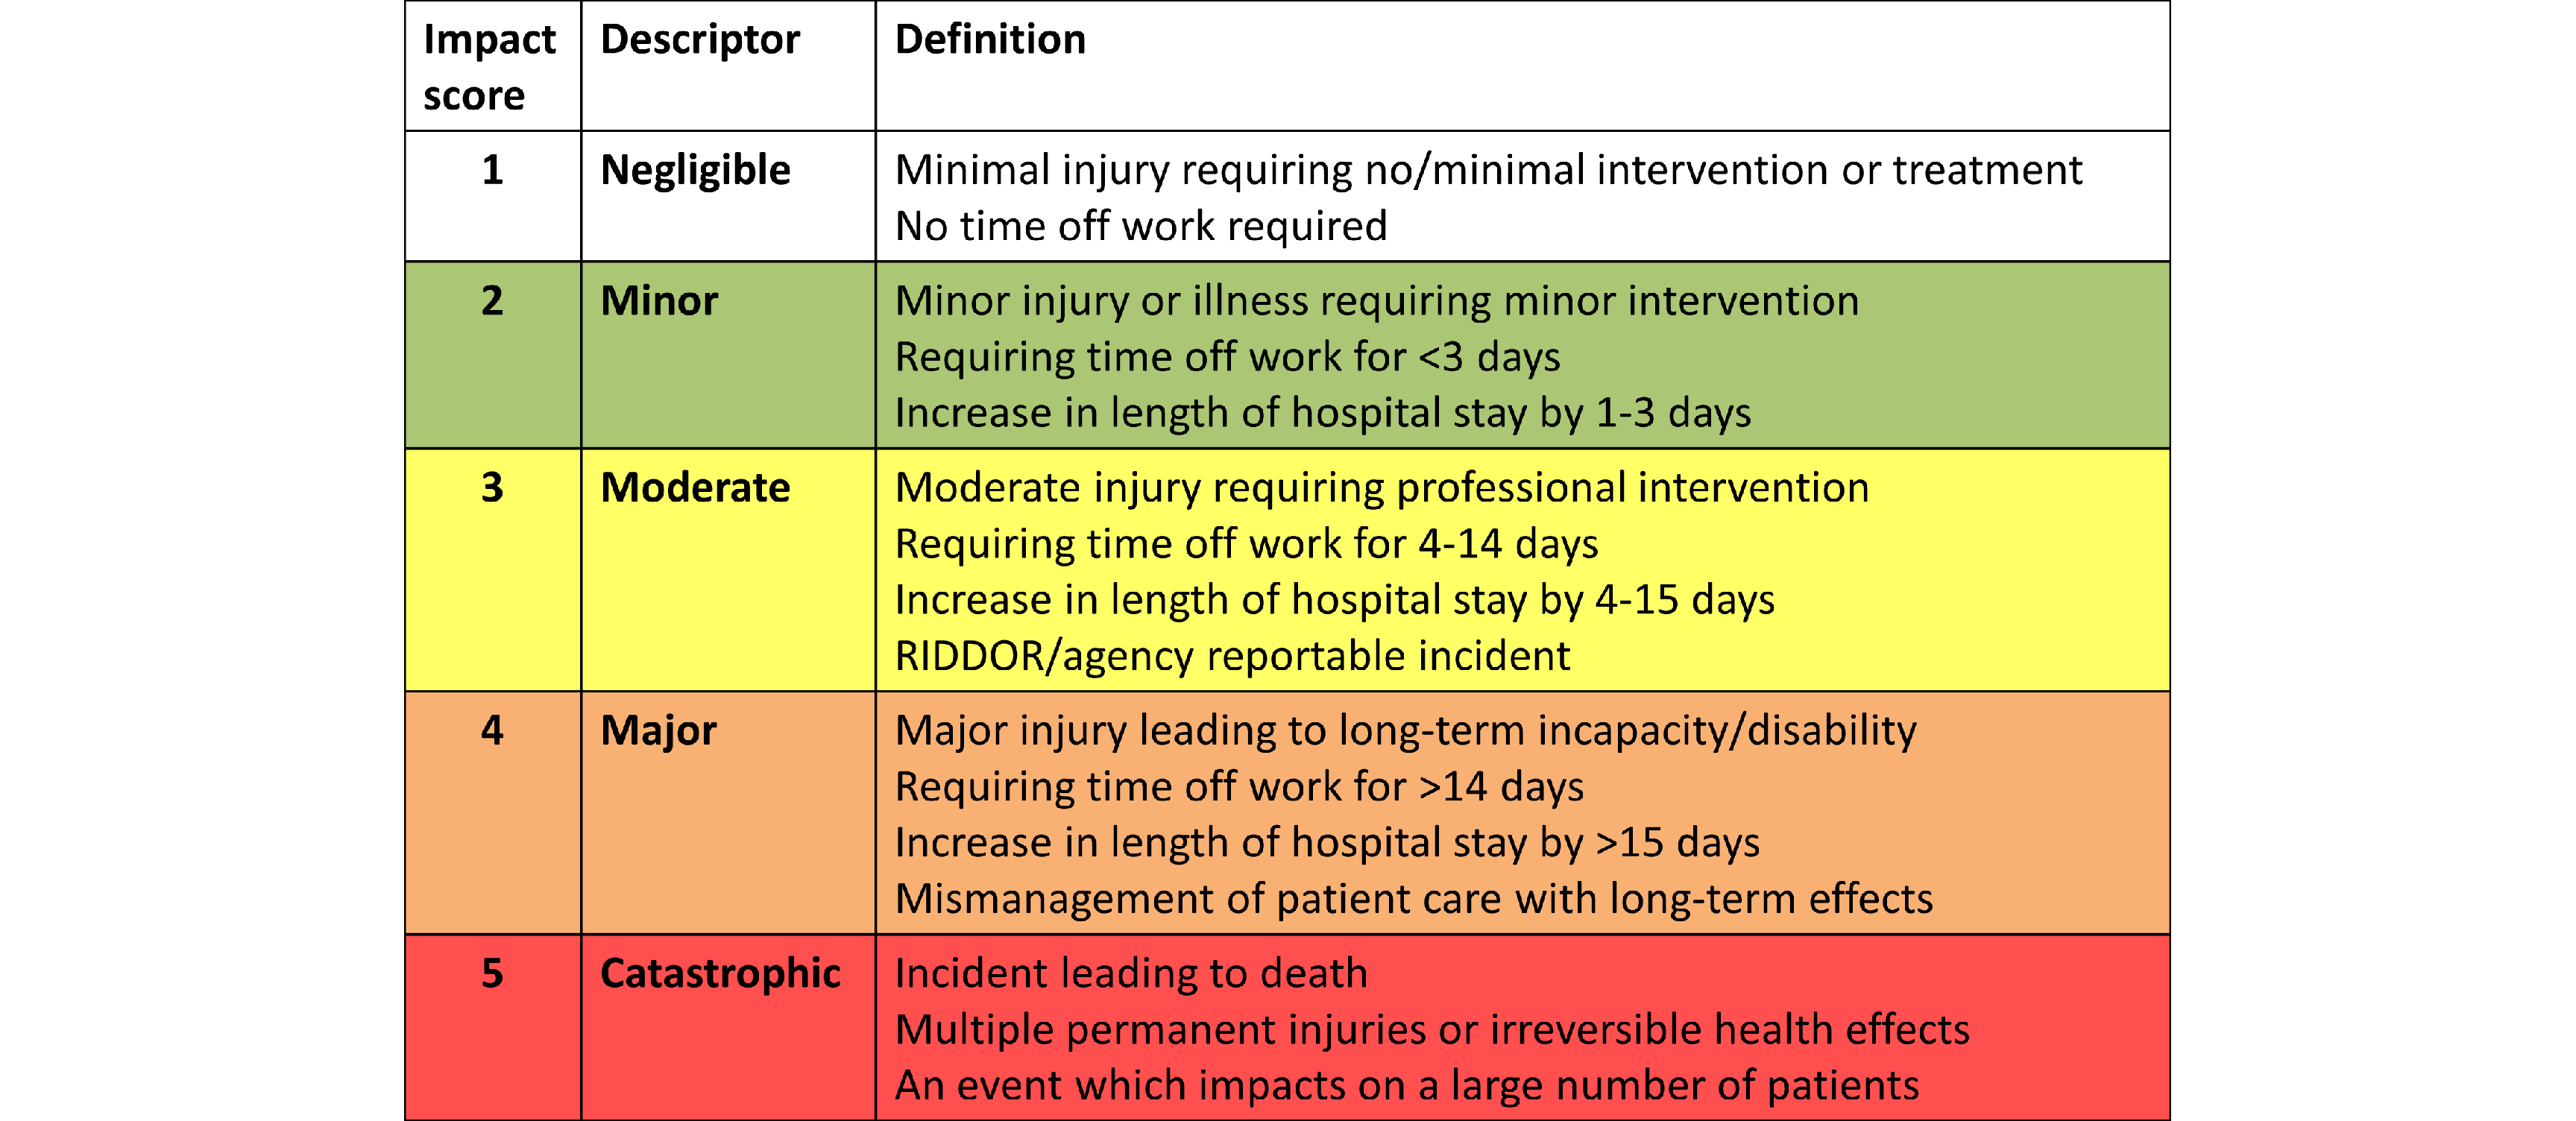 A table of impact score definitions. A score of 1 (Negligible) is defined as: Minimal injury requiring no/minimal intervention or treatment, No time off work required. A score of 2 (Minor) is defined as: Minor injury or illness requiring minor intervention, Requiring time off work for less than 3 days, Increase in length of hospital stay by 1 to 3 days. A score of 3 (Moderate) is defined as: Moderate injury requiring professional intervention, Requiring time off work for 4 to 14 days, Increase in length of hospital stay by 4 to 15 days, RIDDOR/agency reportable incident. A score of 4 (Major) is defined as: Major injury leading to long-term incapacity/disability, Requiring time off work for more than 14 days, Increase in length of hospital stay by more than 15 days, Mismanagement of patient care with long-term effects. A score of 5 (Catastrophic) is defined as: Incident leading to death, Multiple permanent injuries or irreversible health effects, An event which impacts on a large number of patients.